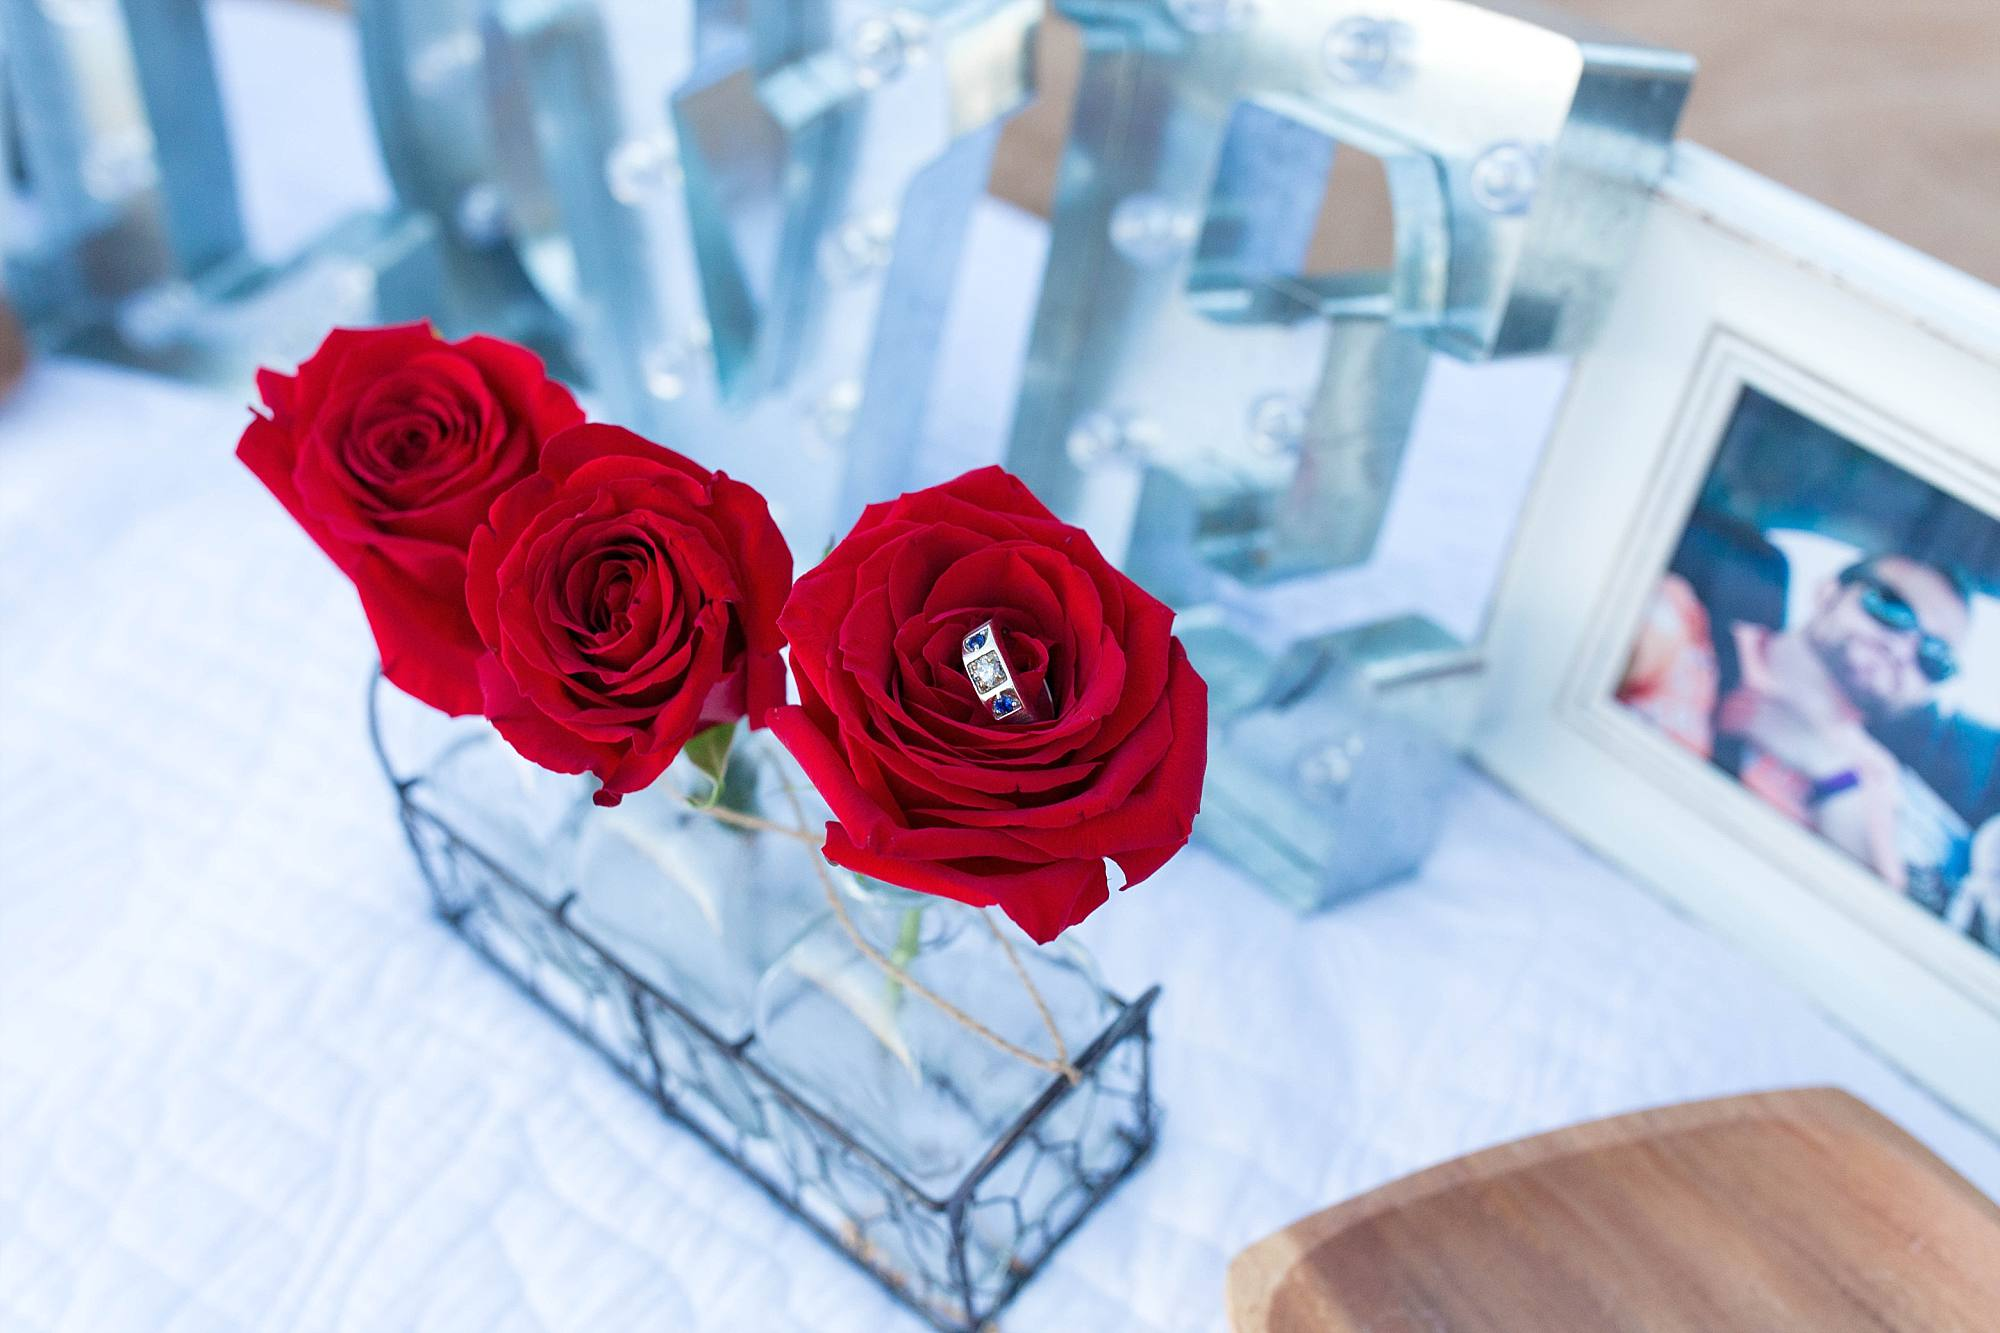 men's diamond engagement ring showcased in a red rose